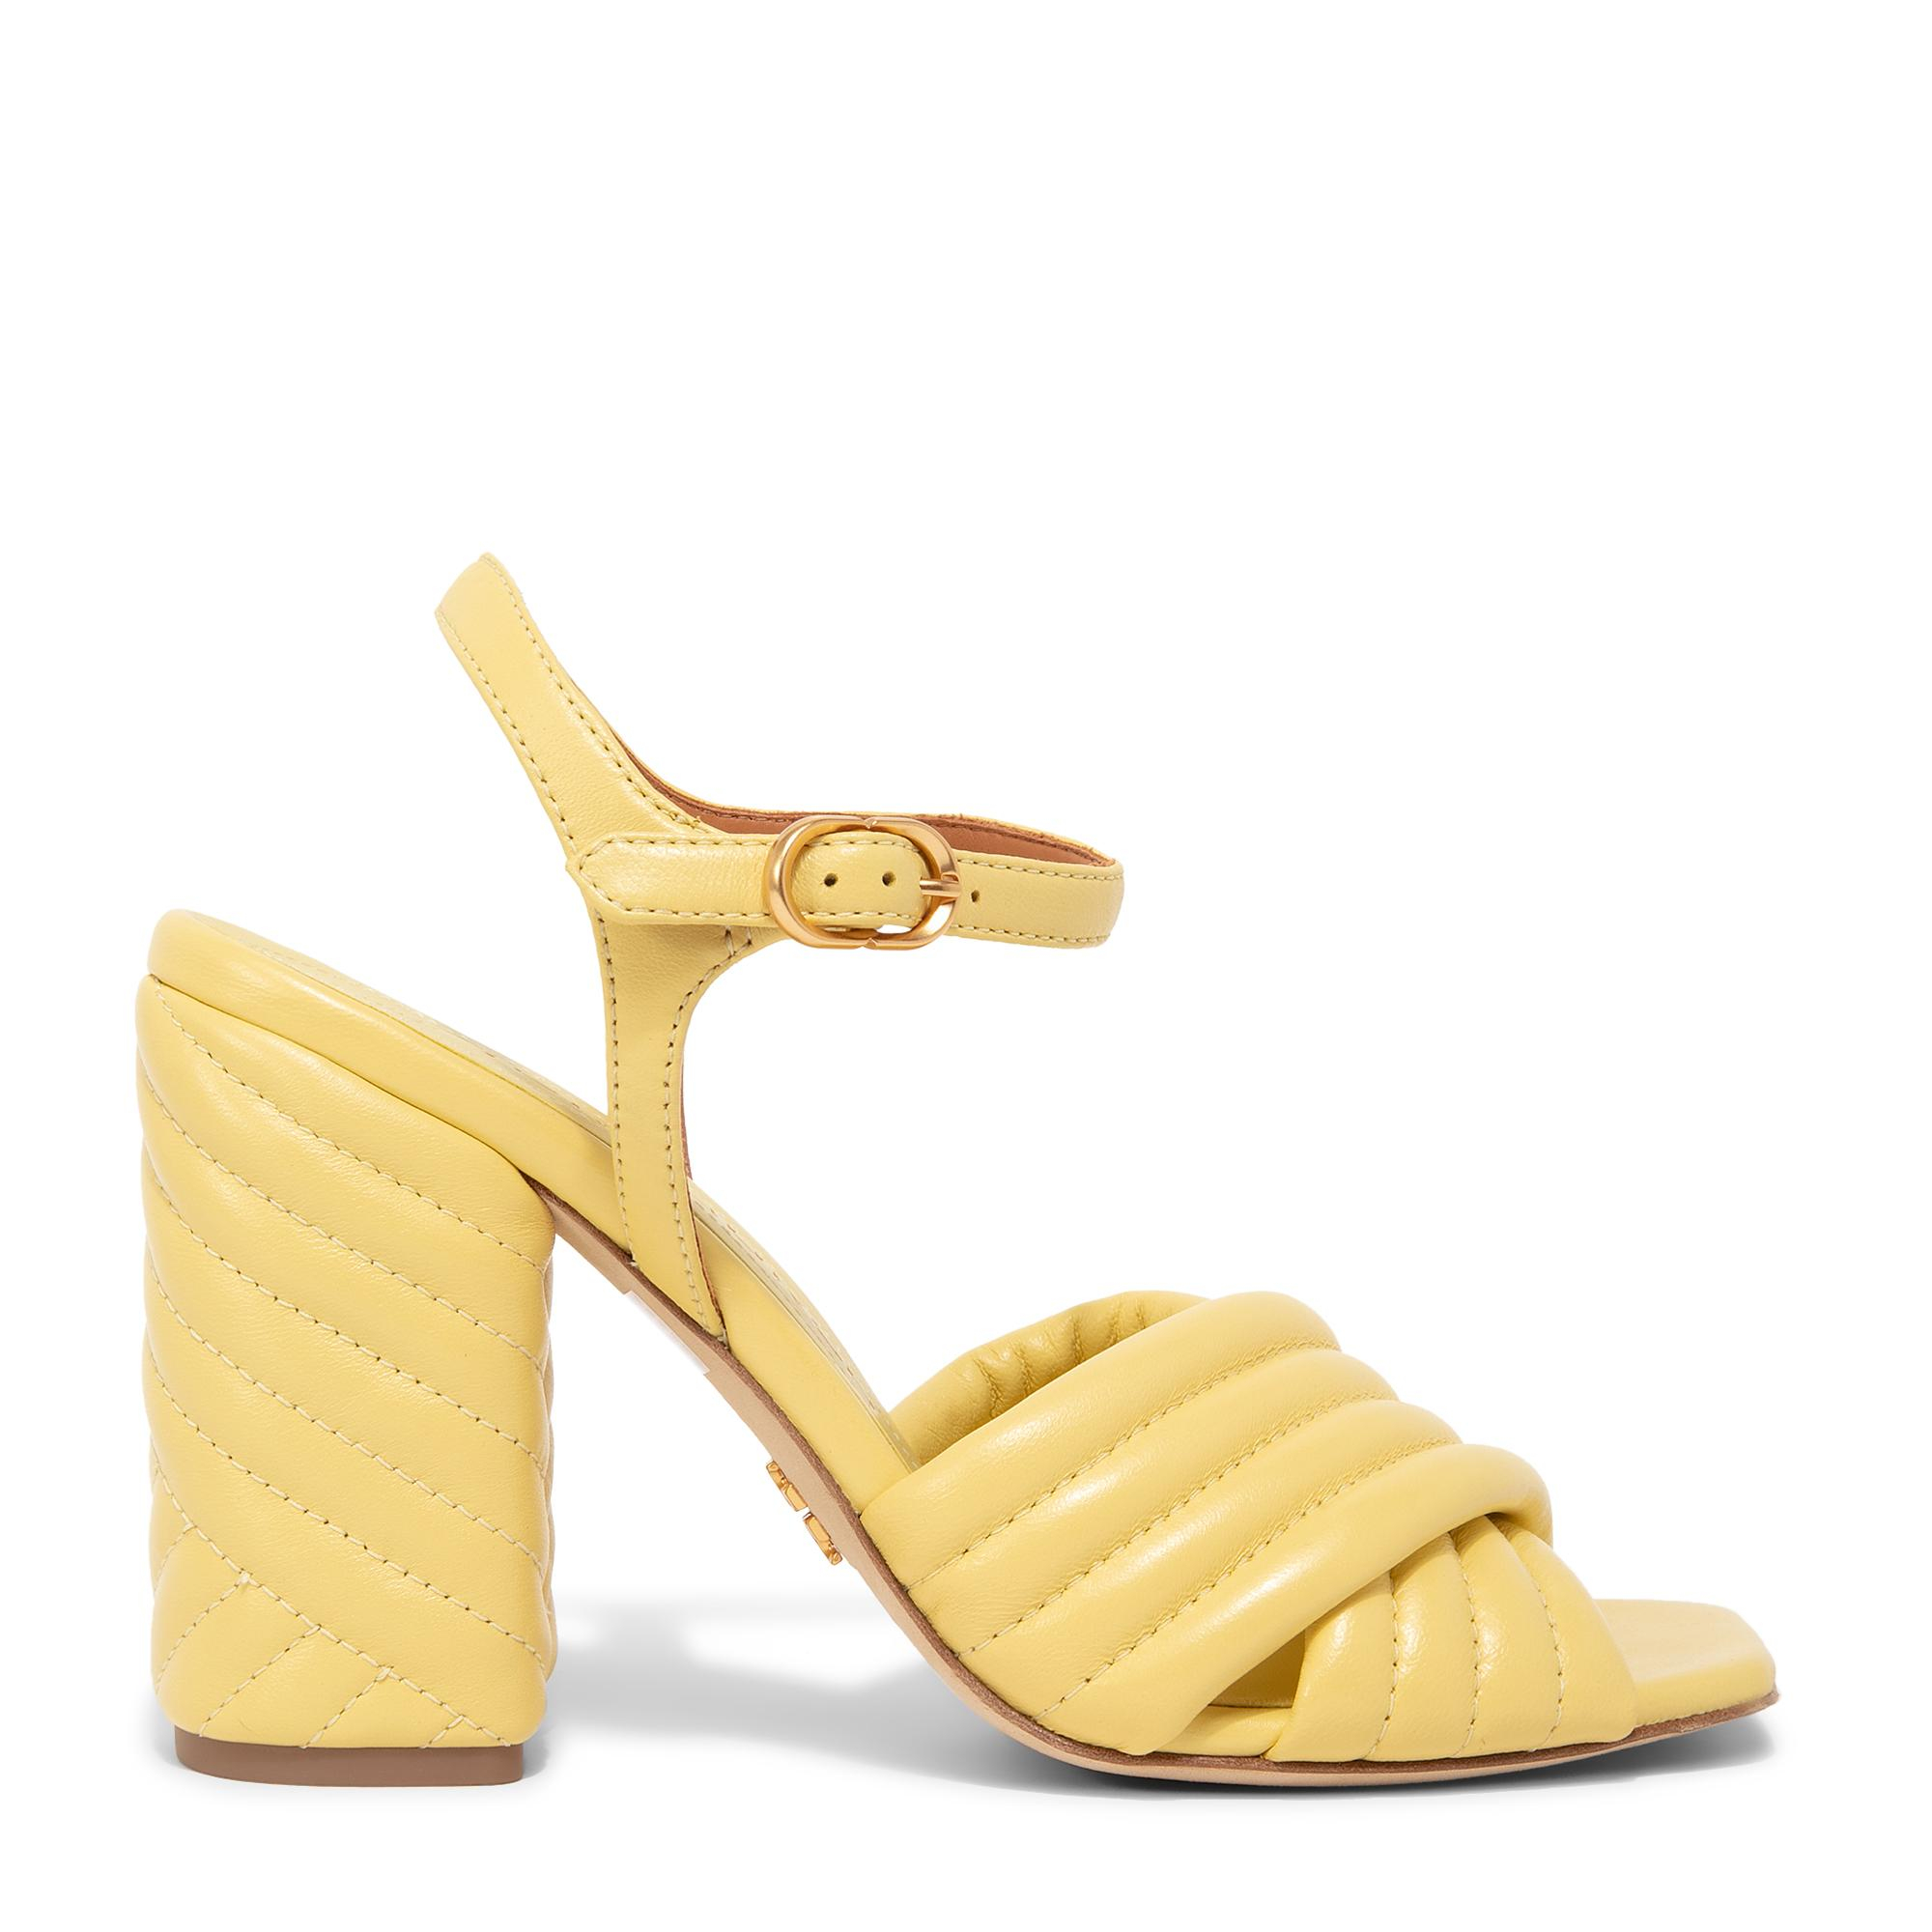 Kira quilted sandals